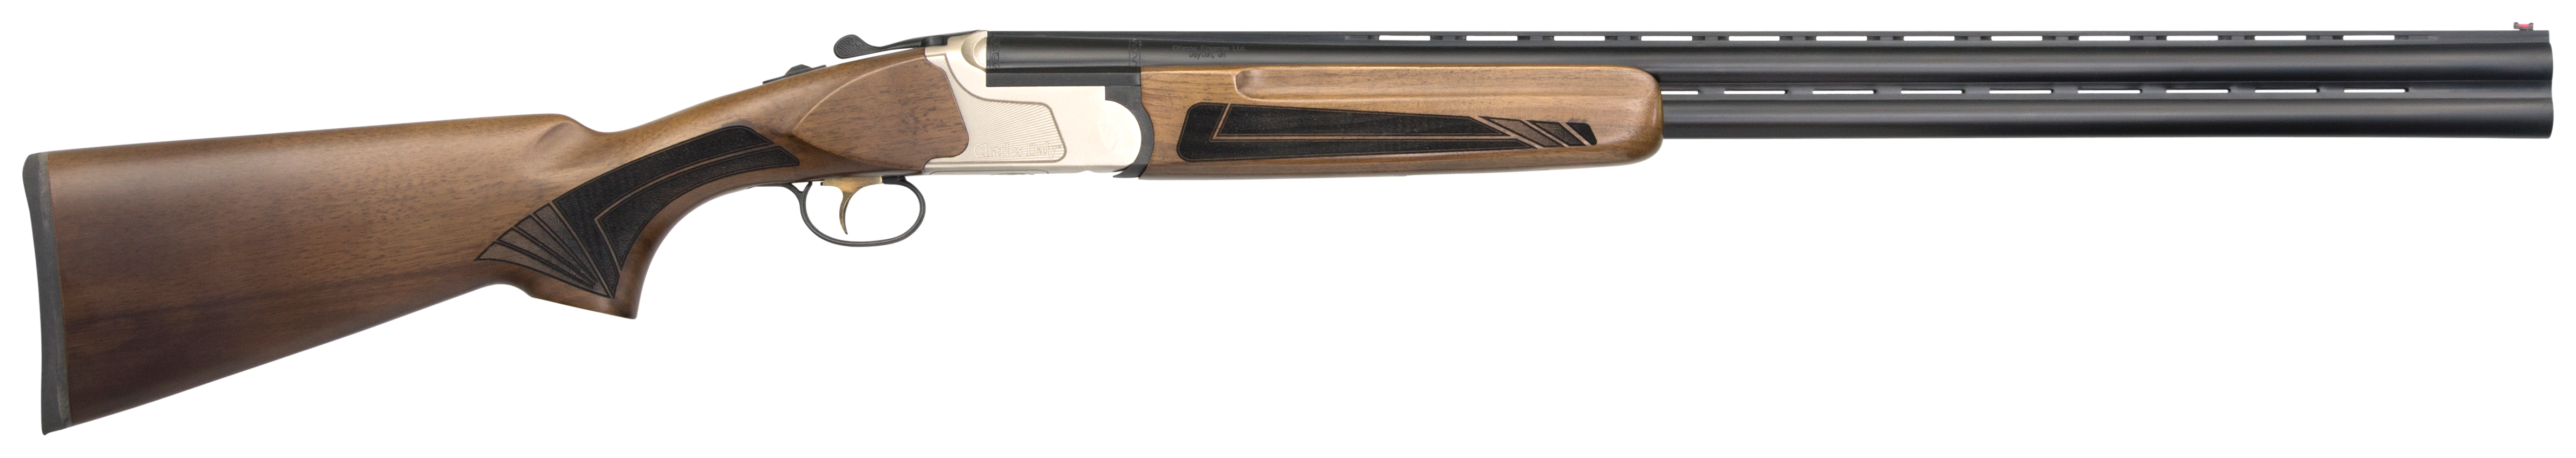 Charles Daly Chiappa 930129 202 Over/Under 12 Gauge 28